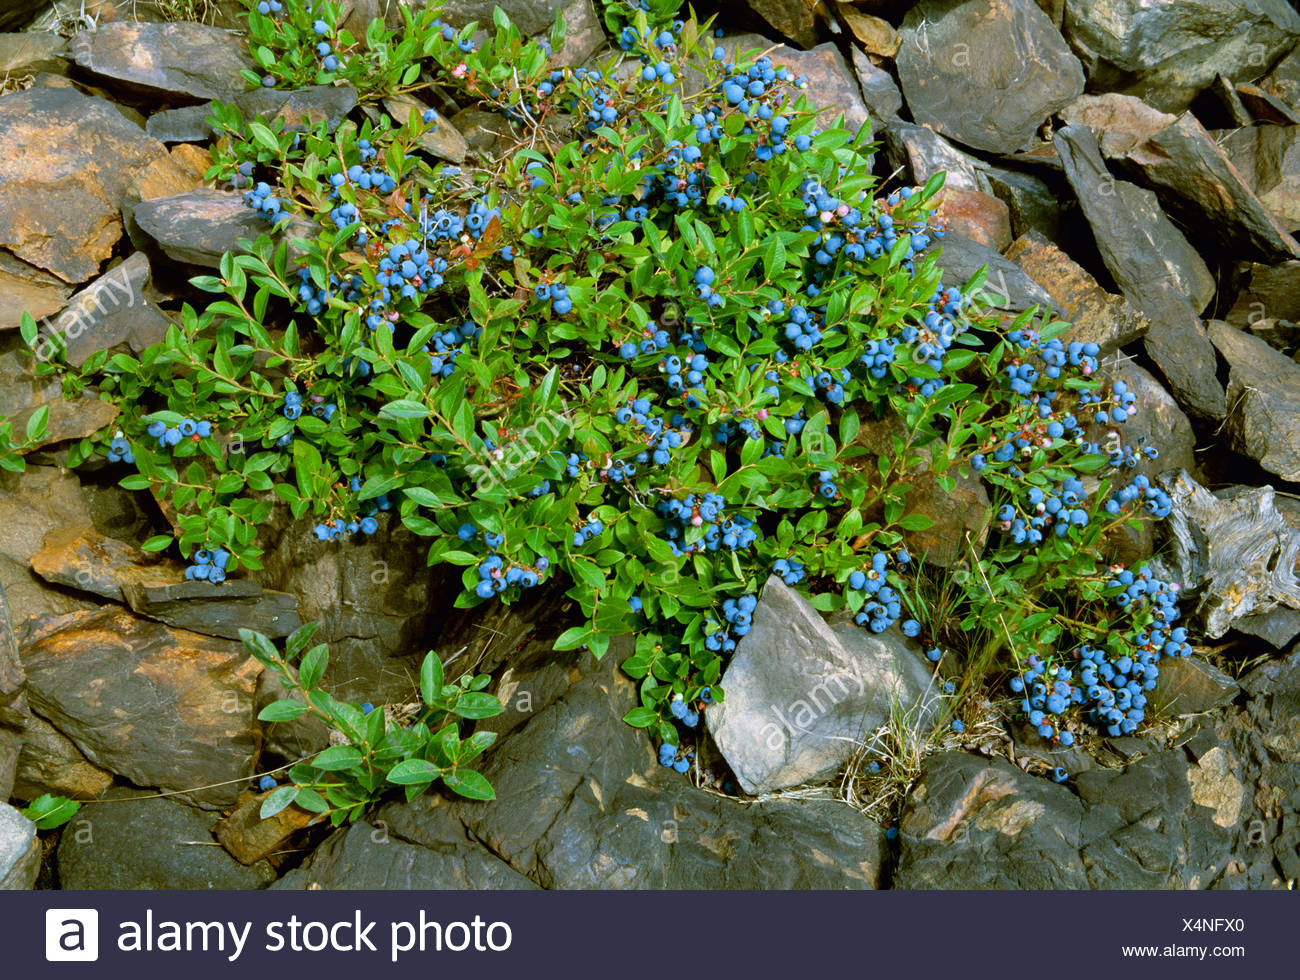 Agriculture - Lowbush blueberry (Vaccinium angustifolium) plant with ripe fruit / near Coniston, Ontario, Canada. - Stock Image